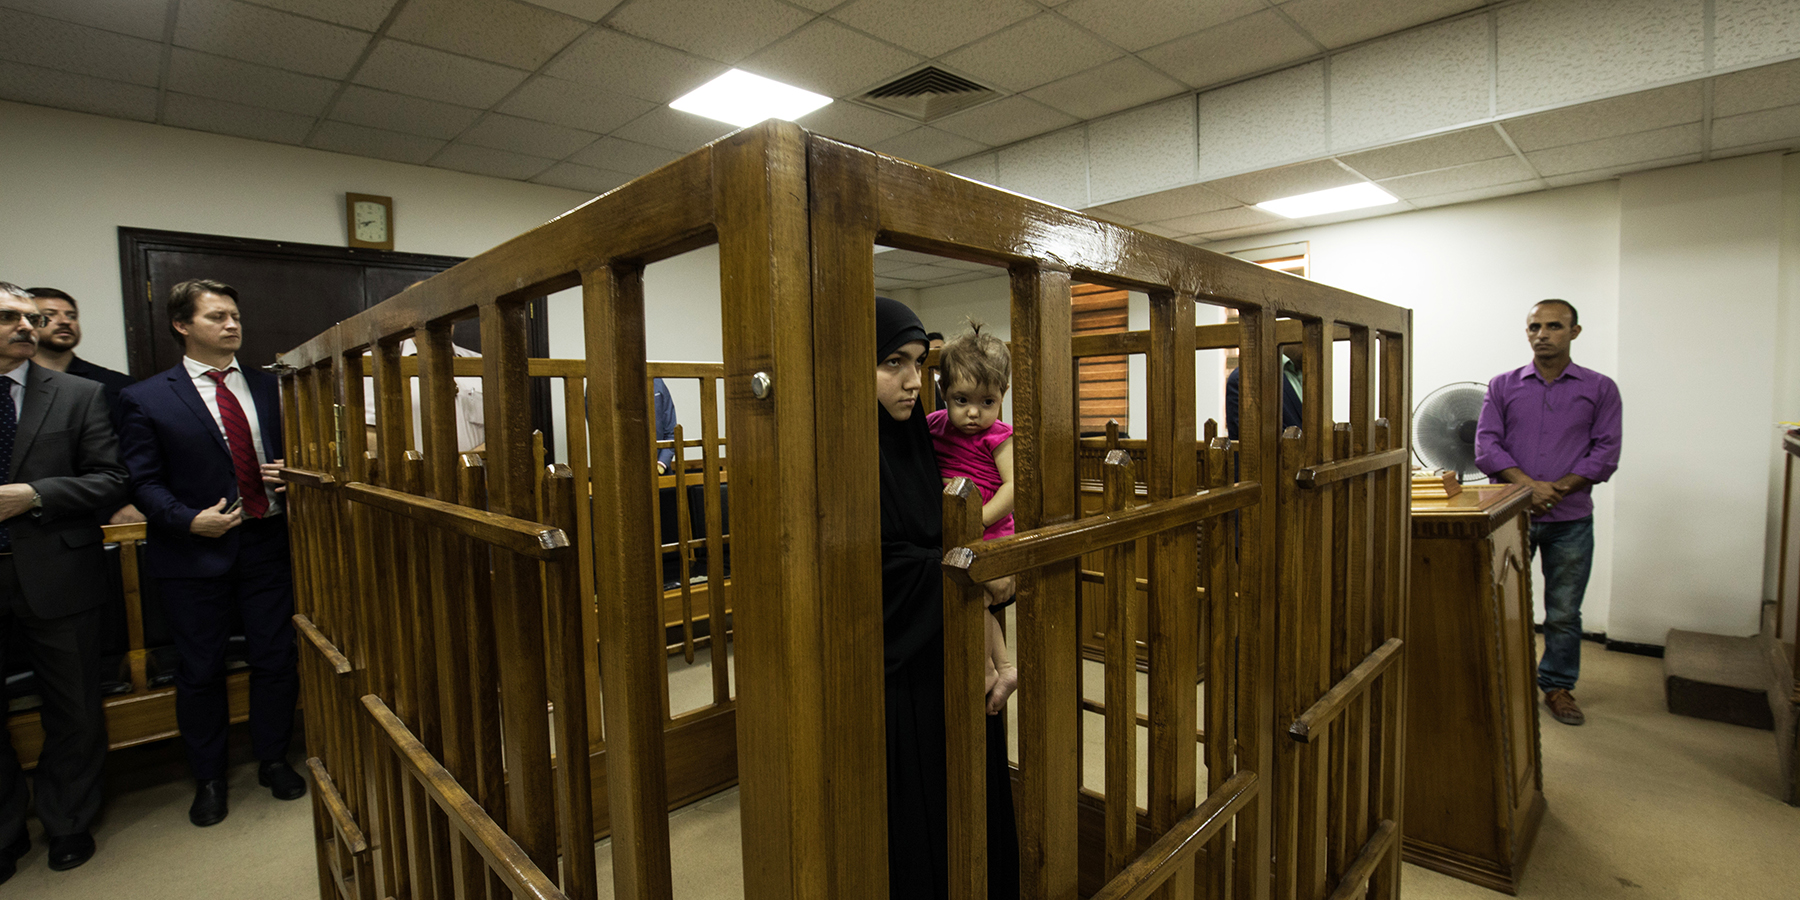 An arrested woman appears before Iraqi judges in a makeshift courtroom in Baghdad on April 17. (Afshin Ismaeli/SOPA Images/LightRocket via Getty Images)